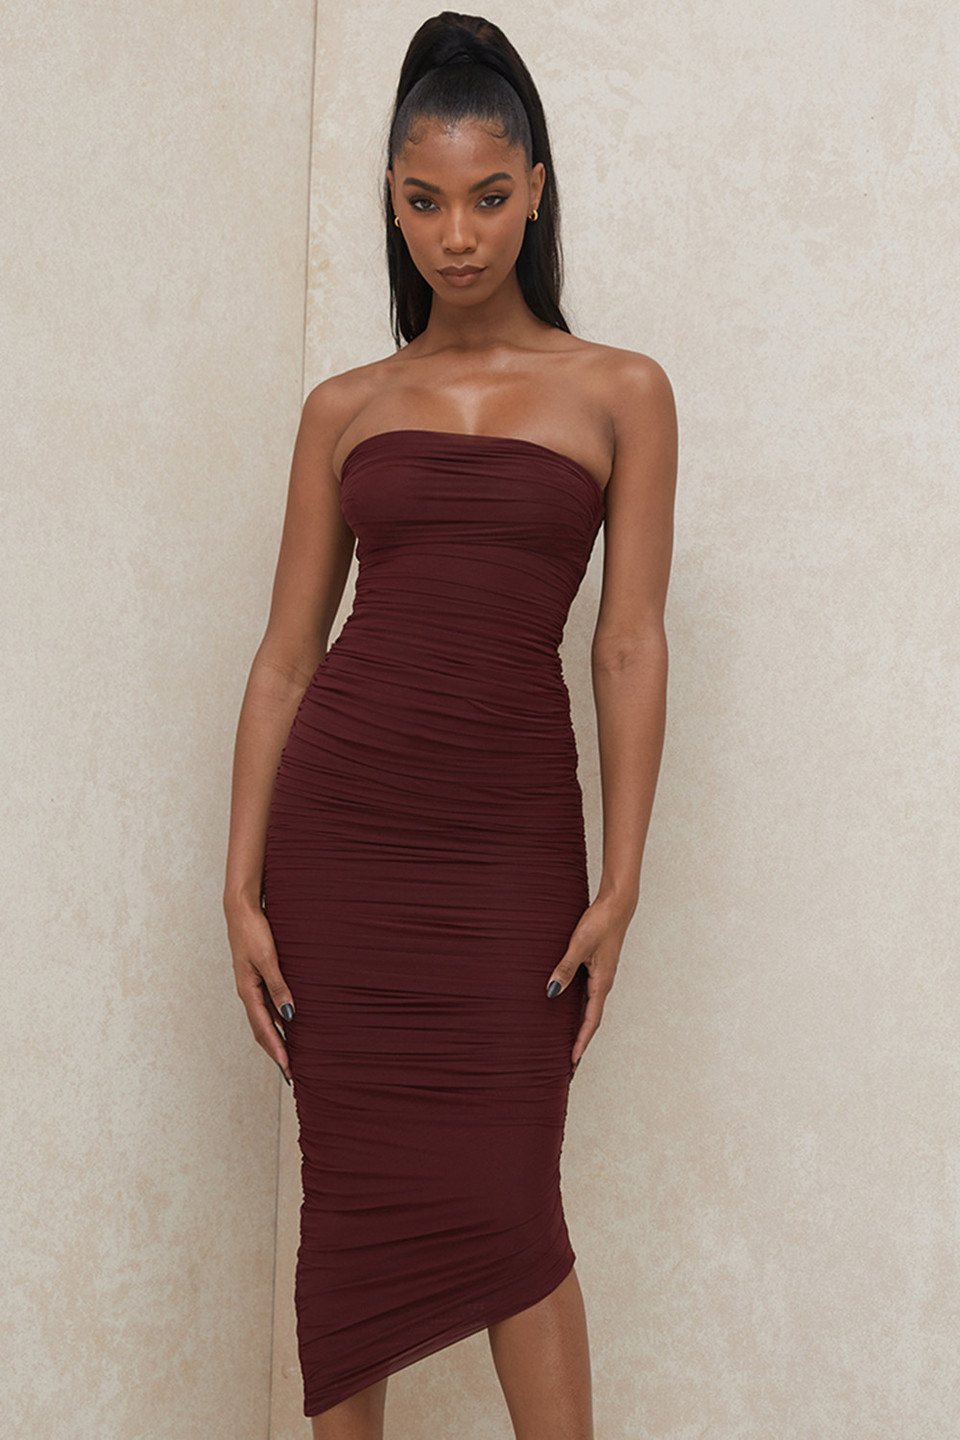 Sasha Raisin Strapless Ruched Midi Dress